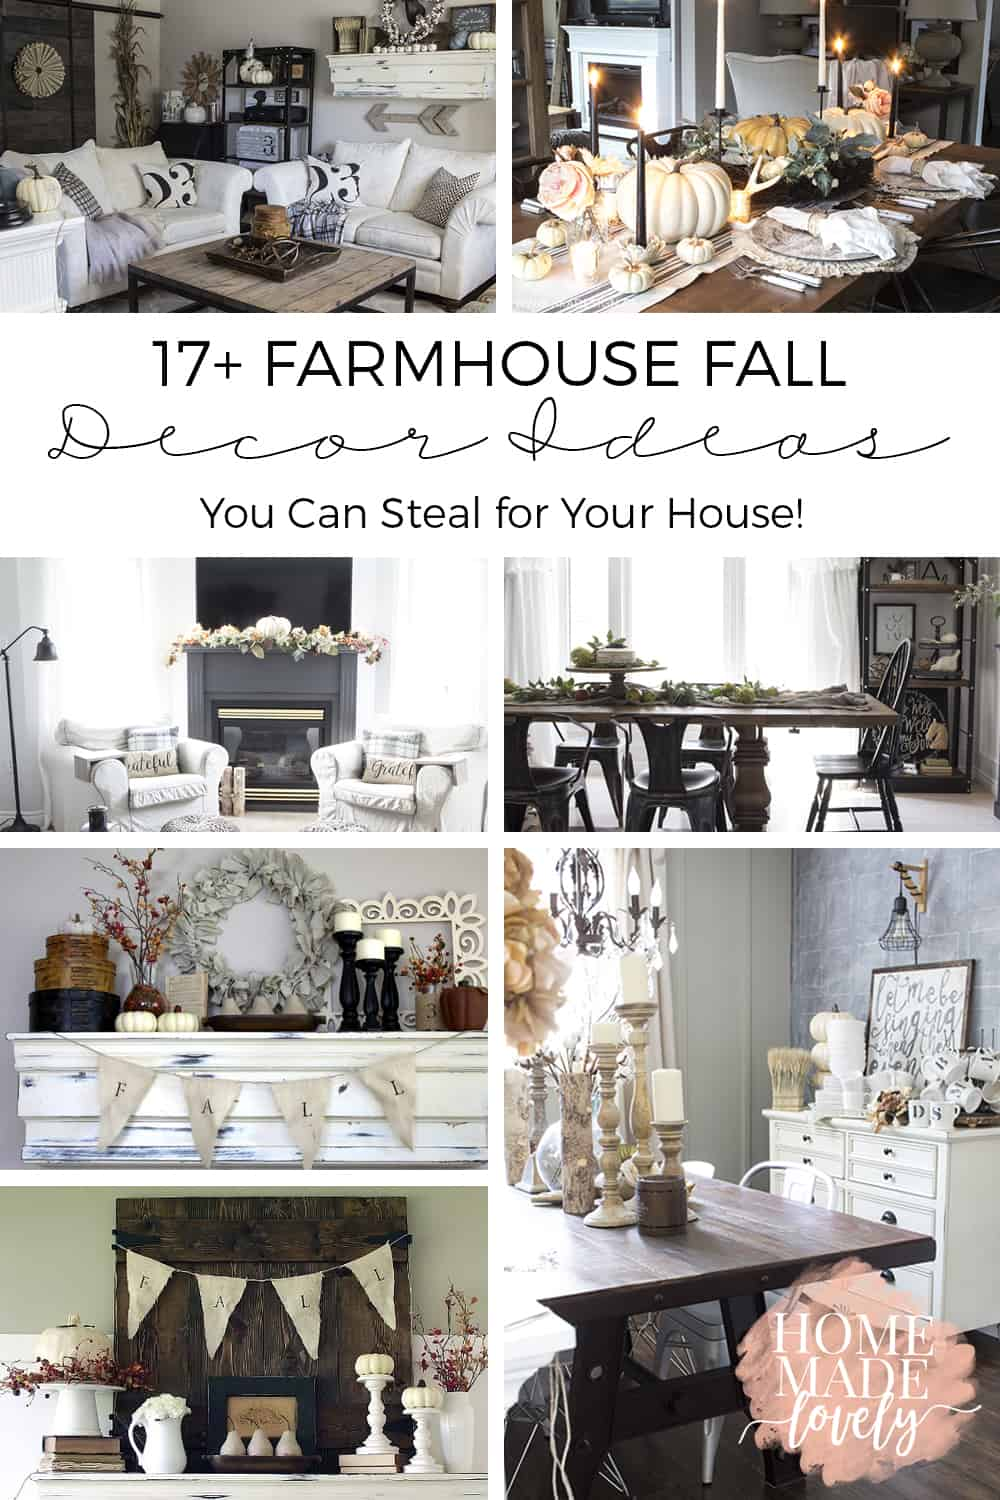 Farmhouse Fall Decor Ideas